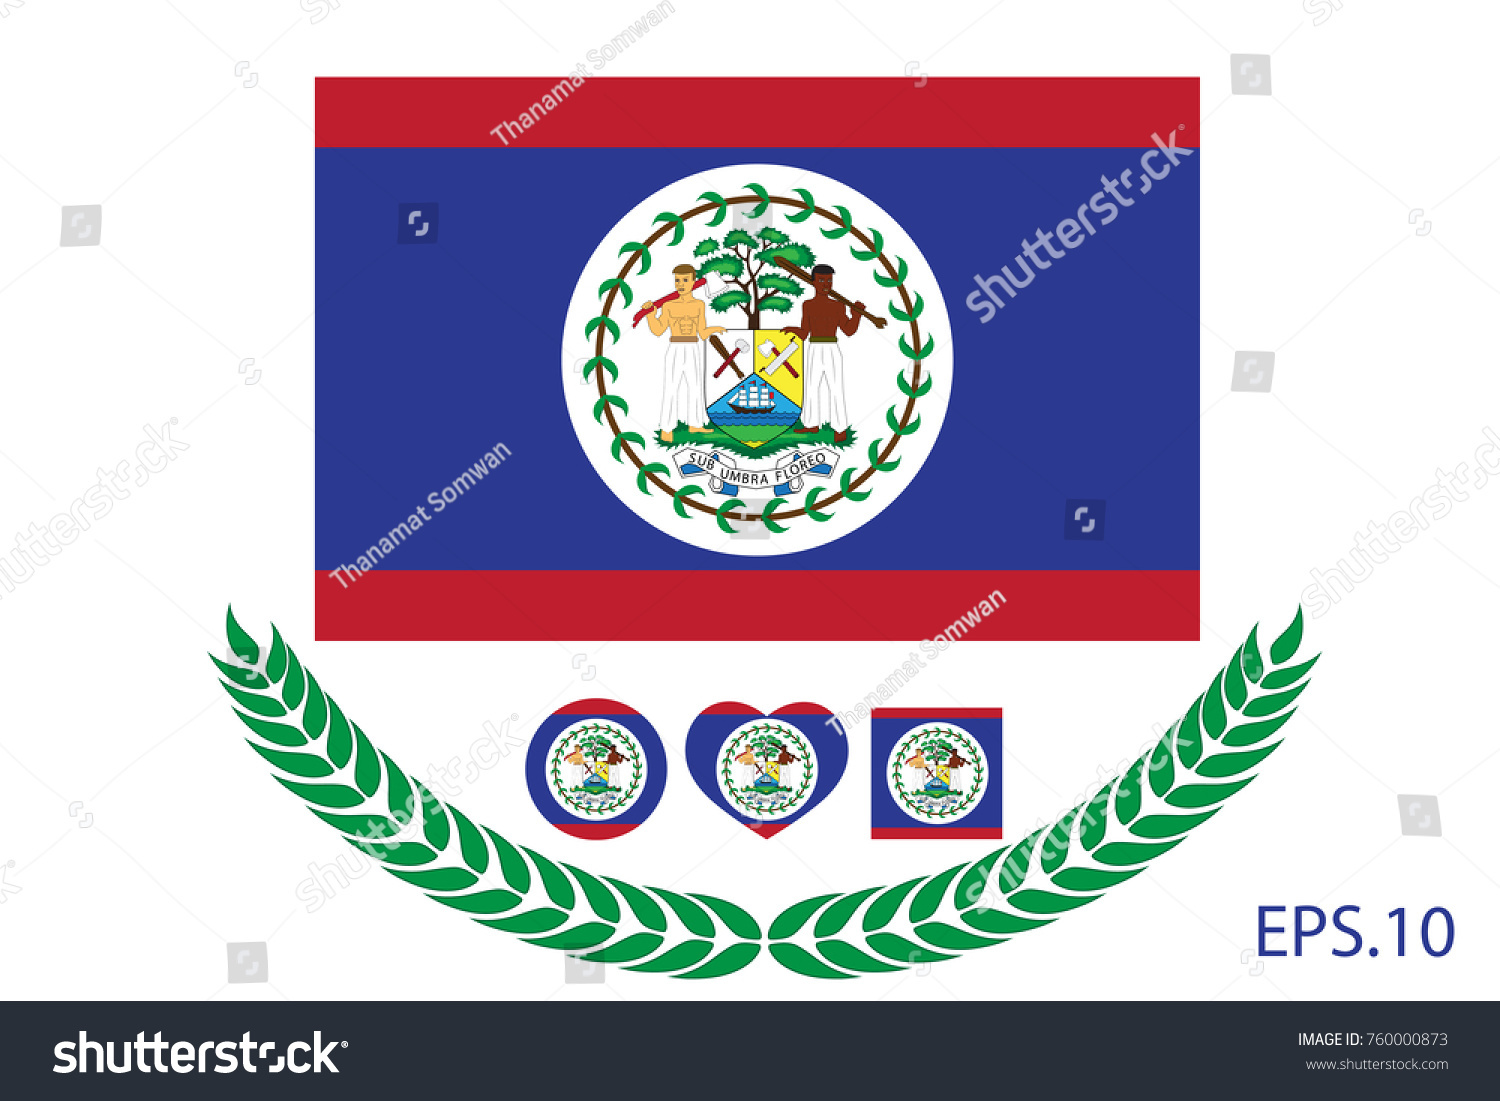 Official vector flag belize eps10 stock vector 760000873 official vector flag of belize eps10 biocorpaavc Image collections